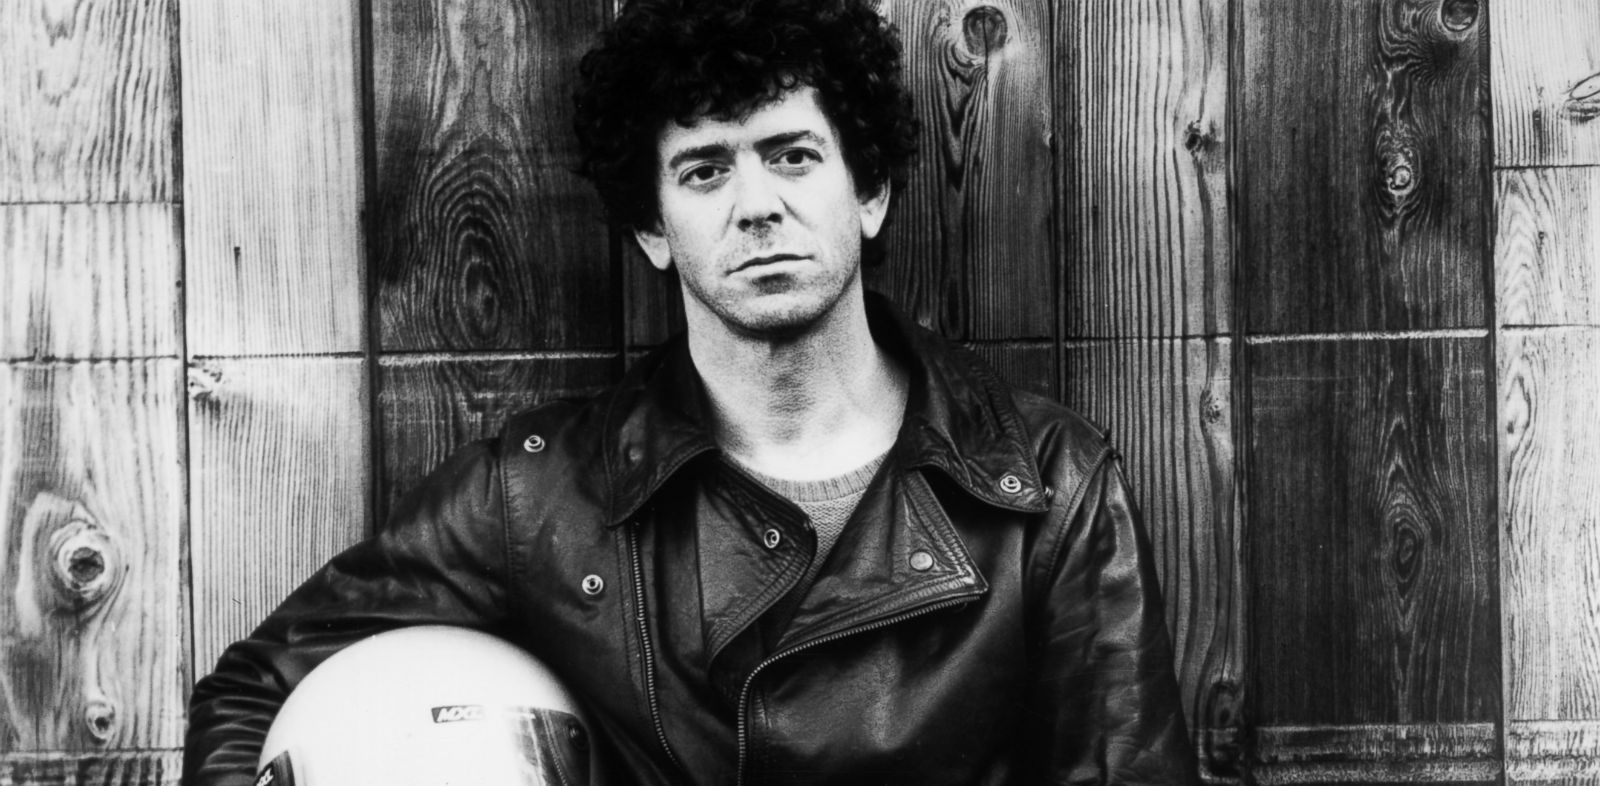 PHOTO: American rock singer, songwriter and photographer Lou Reed, circa 1985.